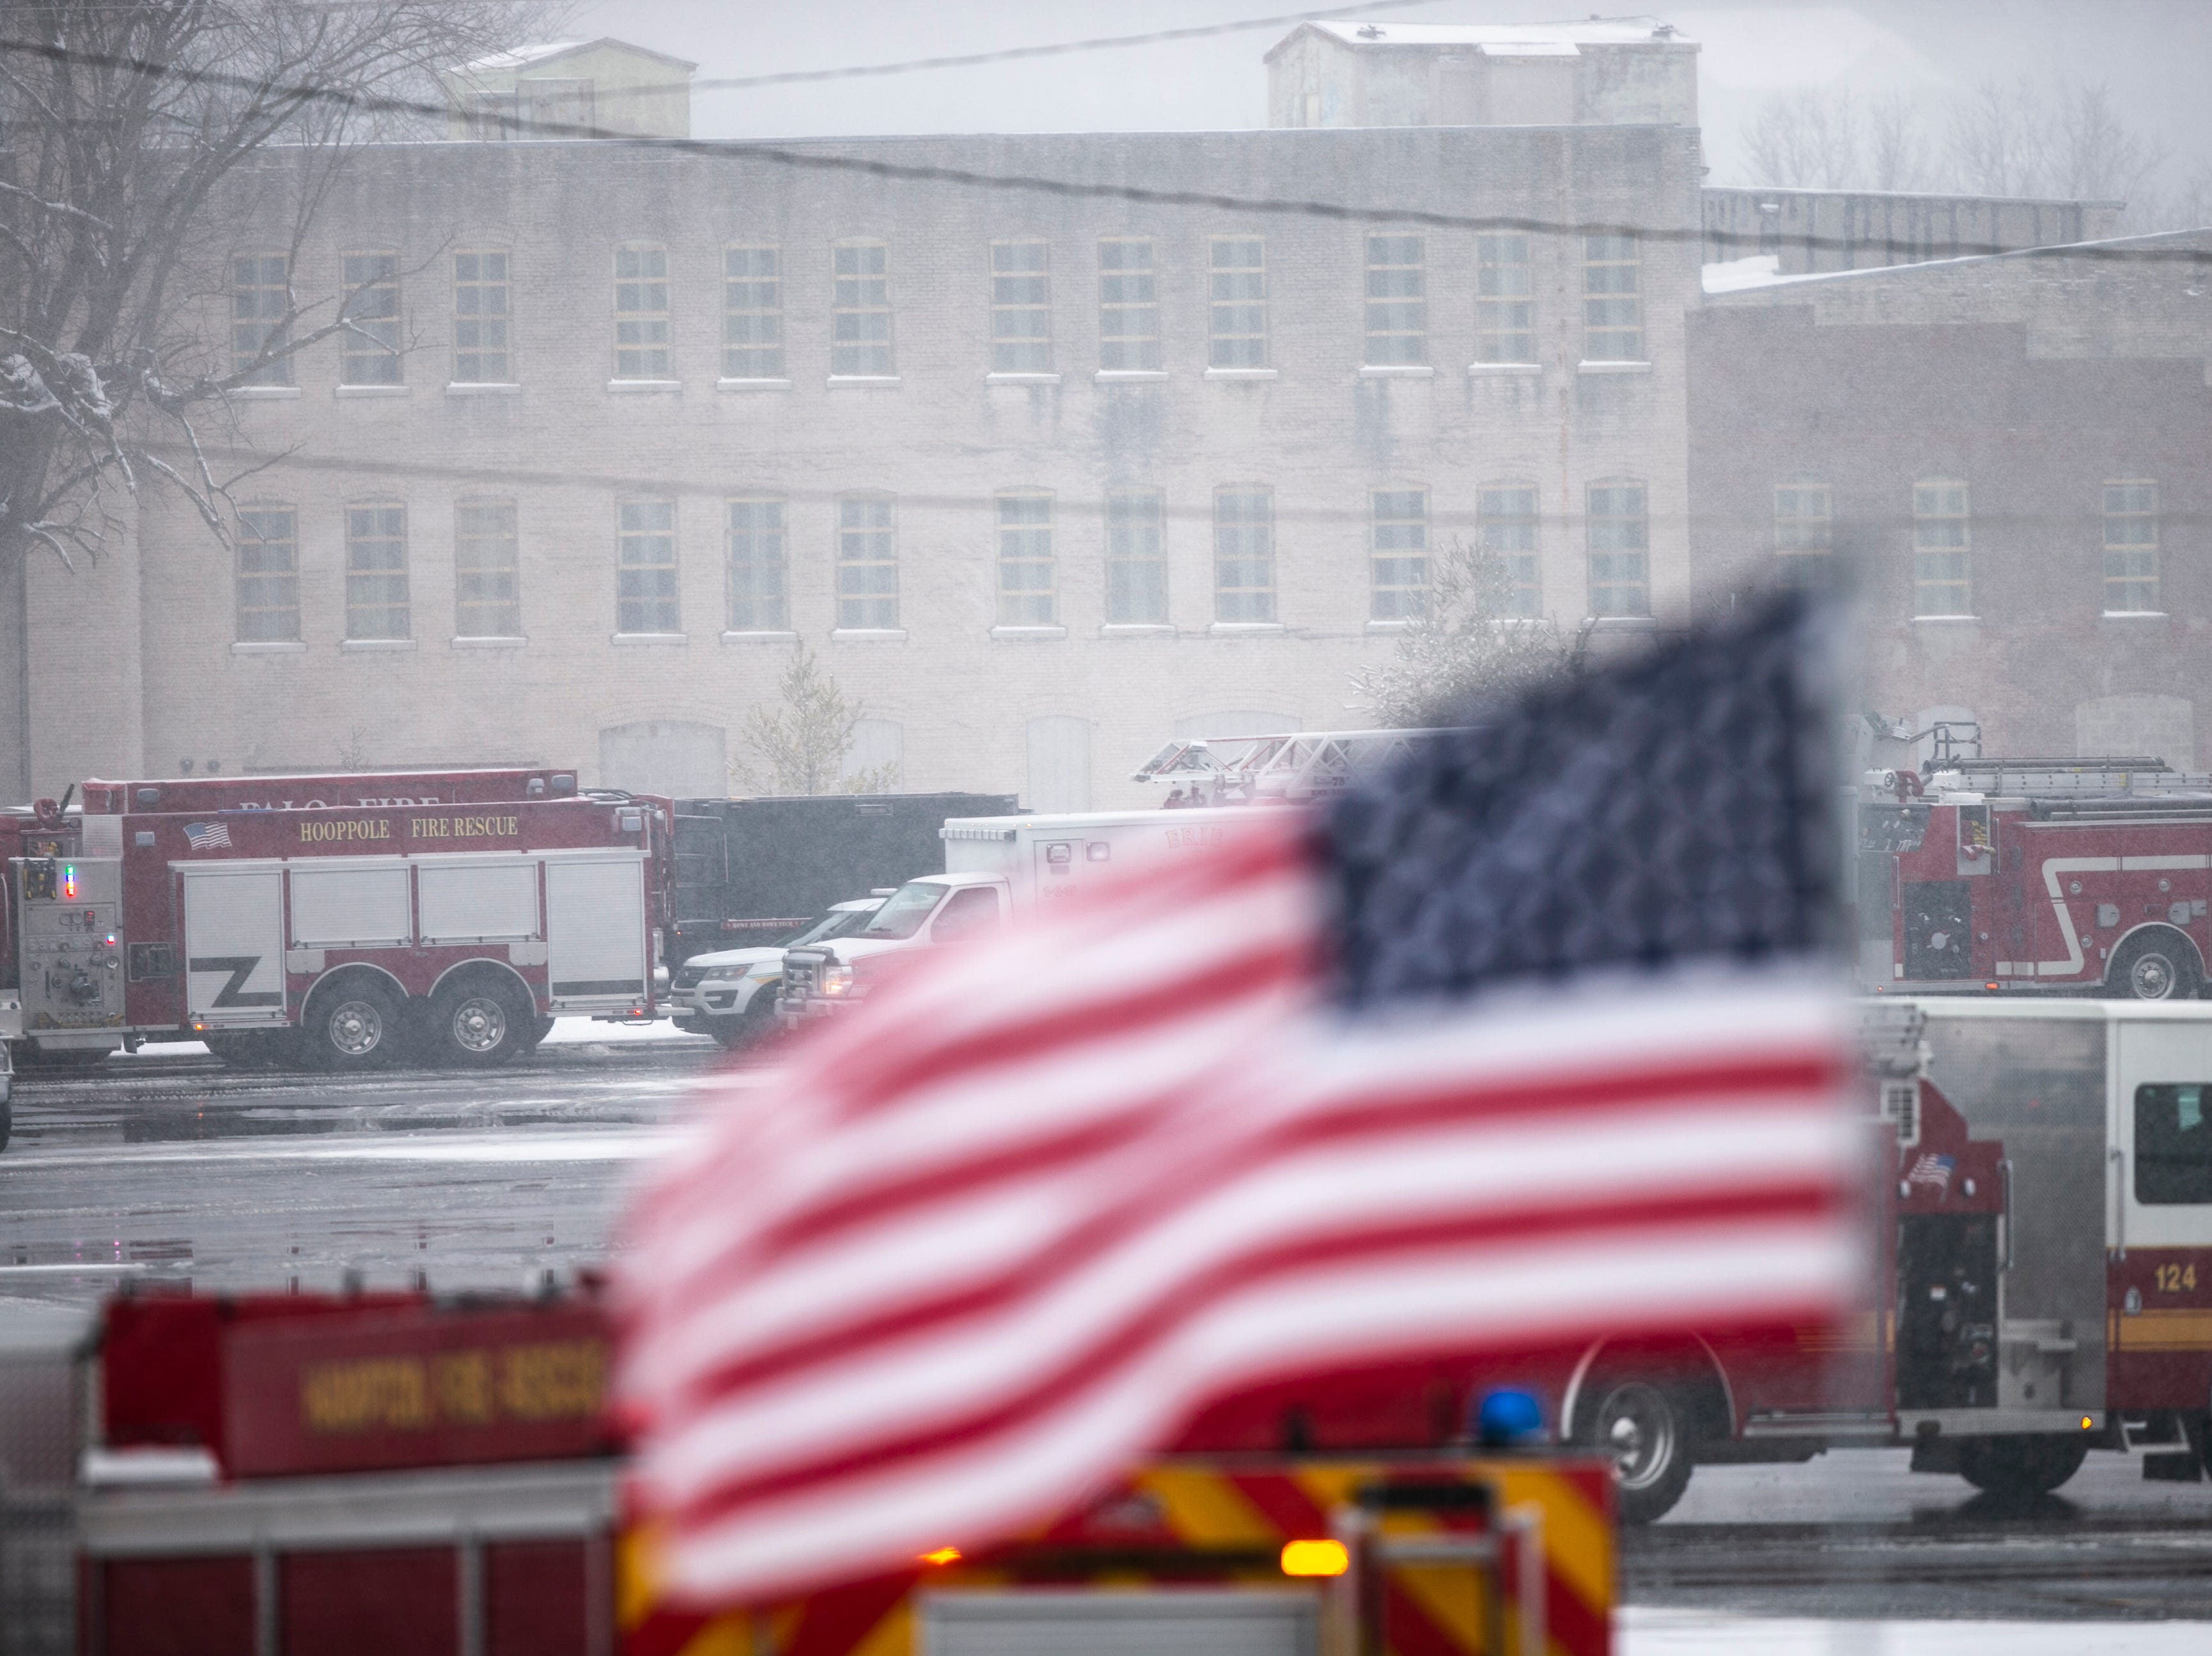 An American flag waves while firetrucks park during a public memorial service for Lt. Eric Hosette on Saturday, Jan. 12, 2019, at Riverview Park Bandshell in Clinton, Iowa.